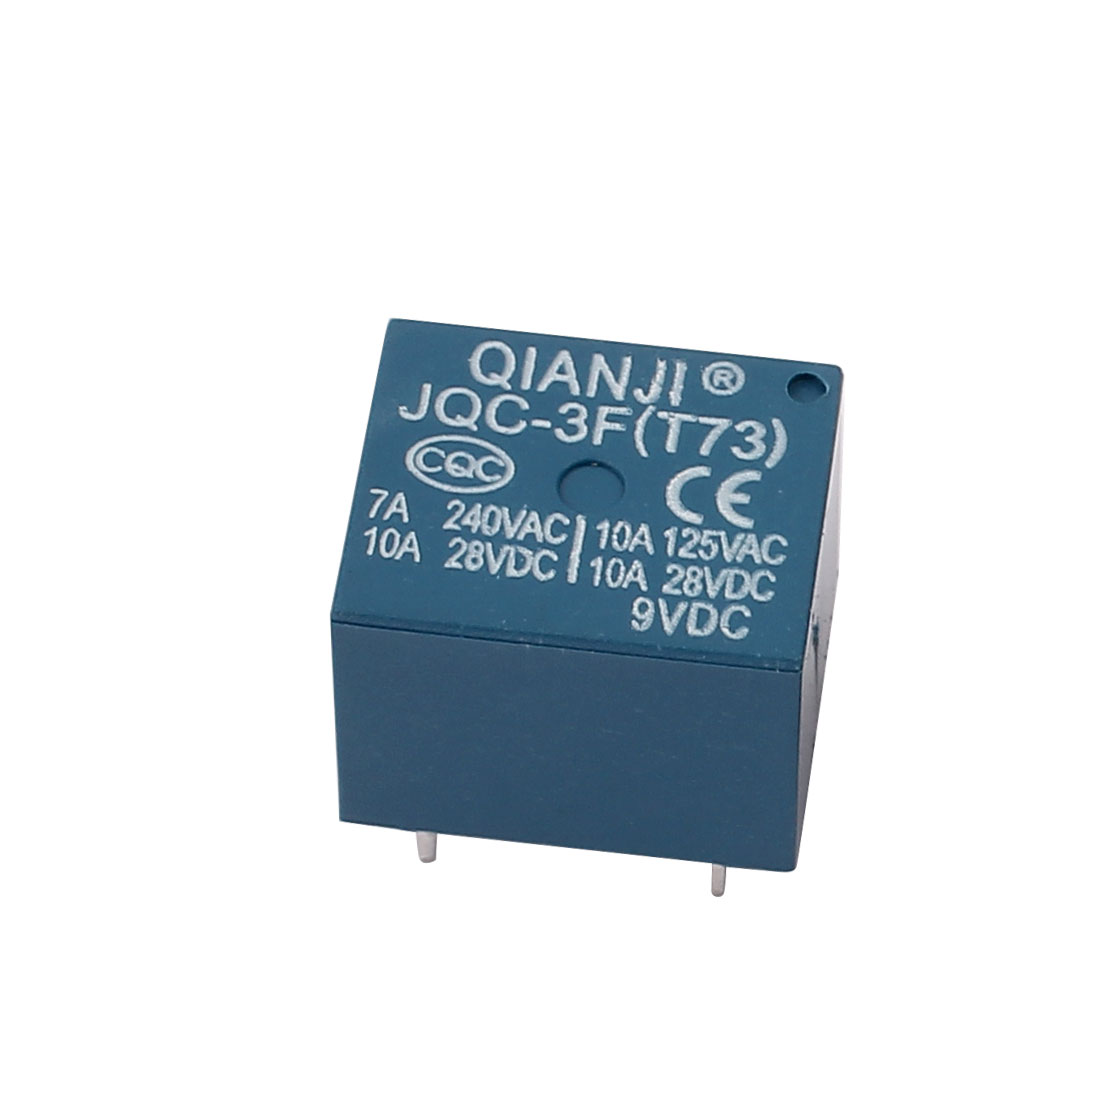 JQC-3F(T73) DC 9V Coil Voltage 5 Terminal Mini Power Relay SPDT